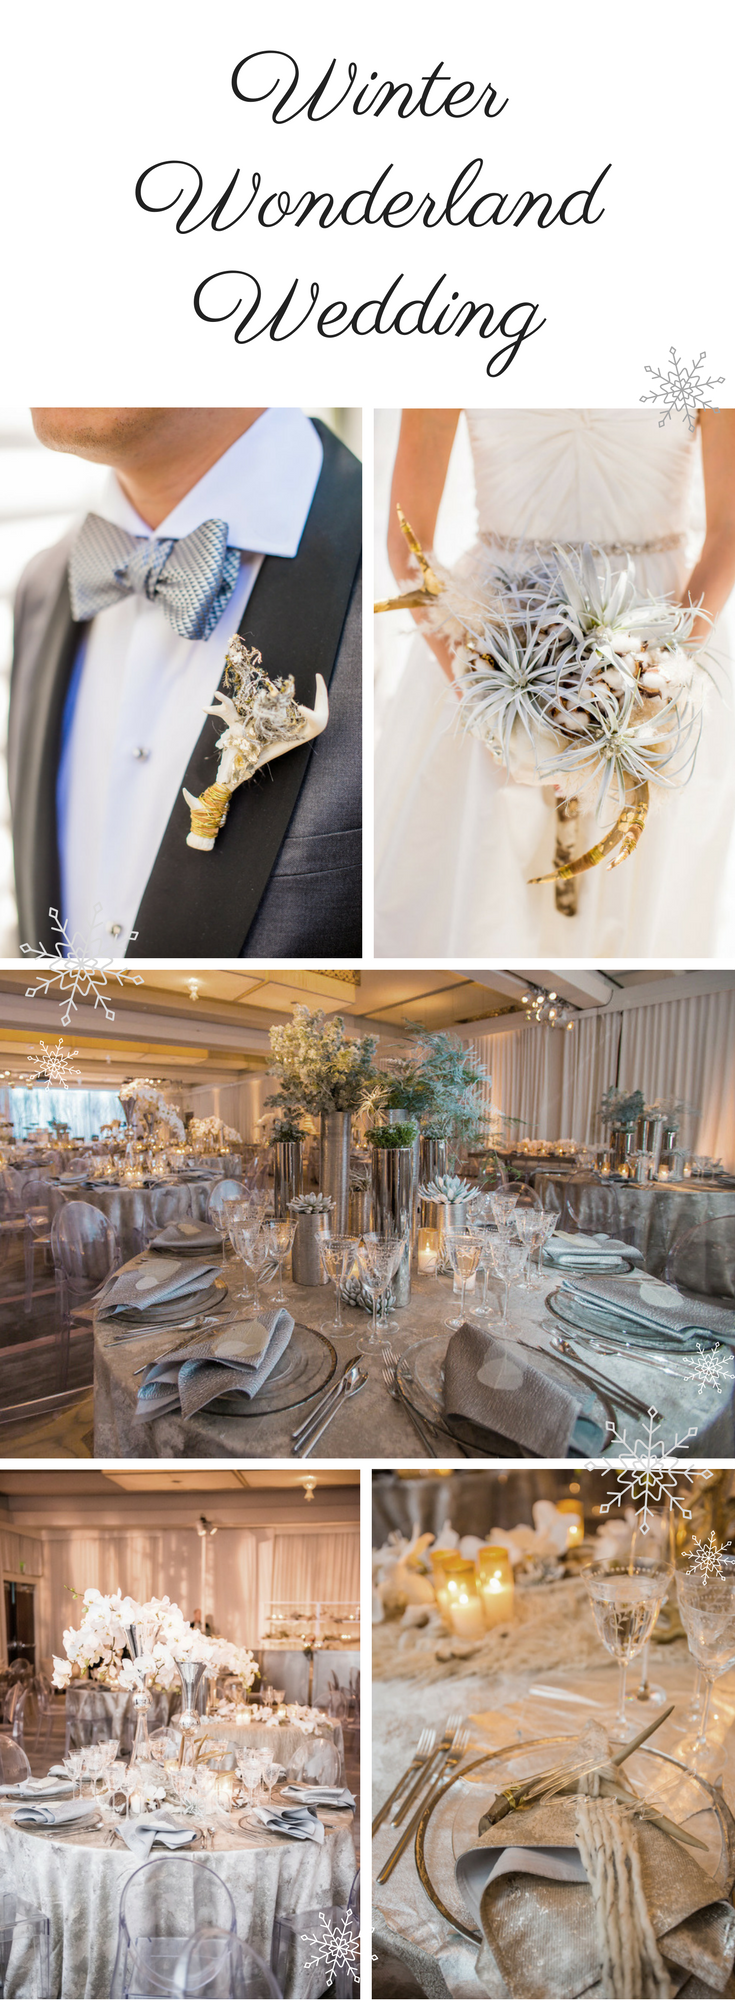 Bring Unexpected Elements into Play for a Winter Wonderland Wedding